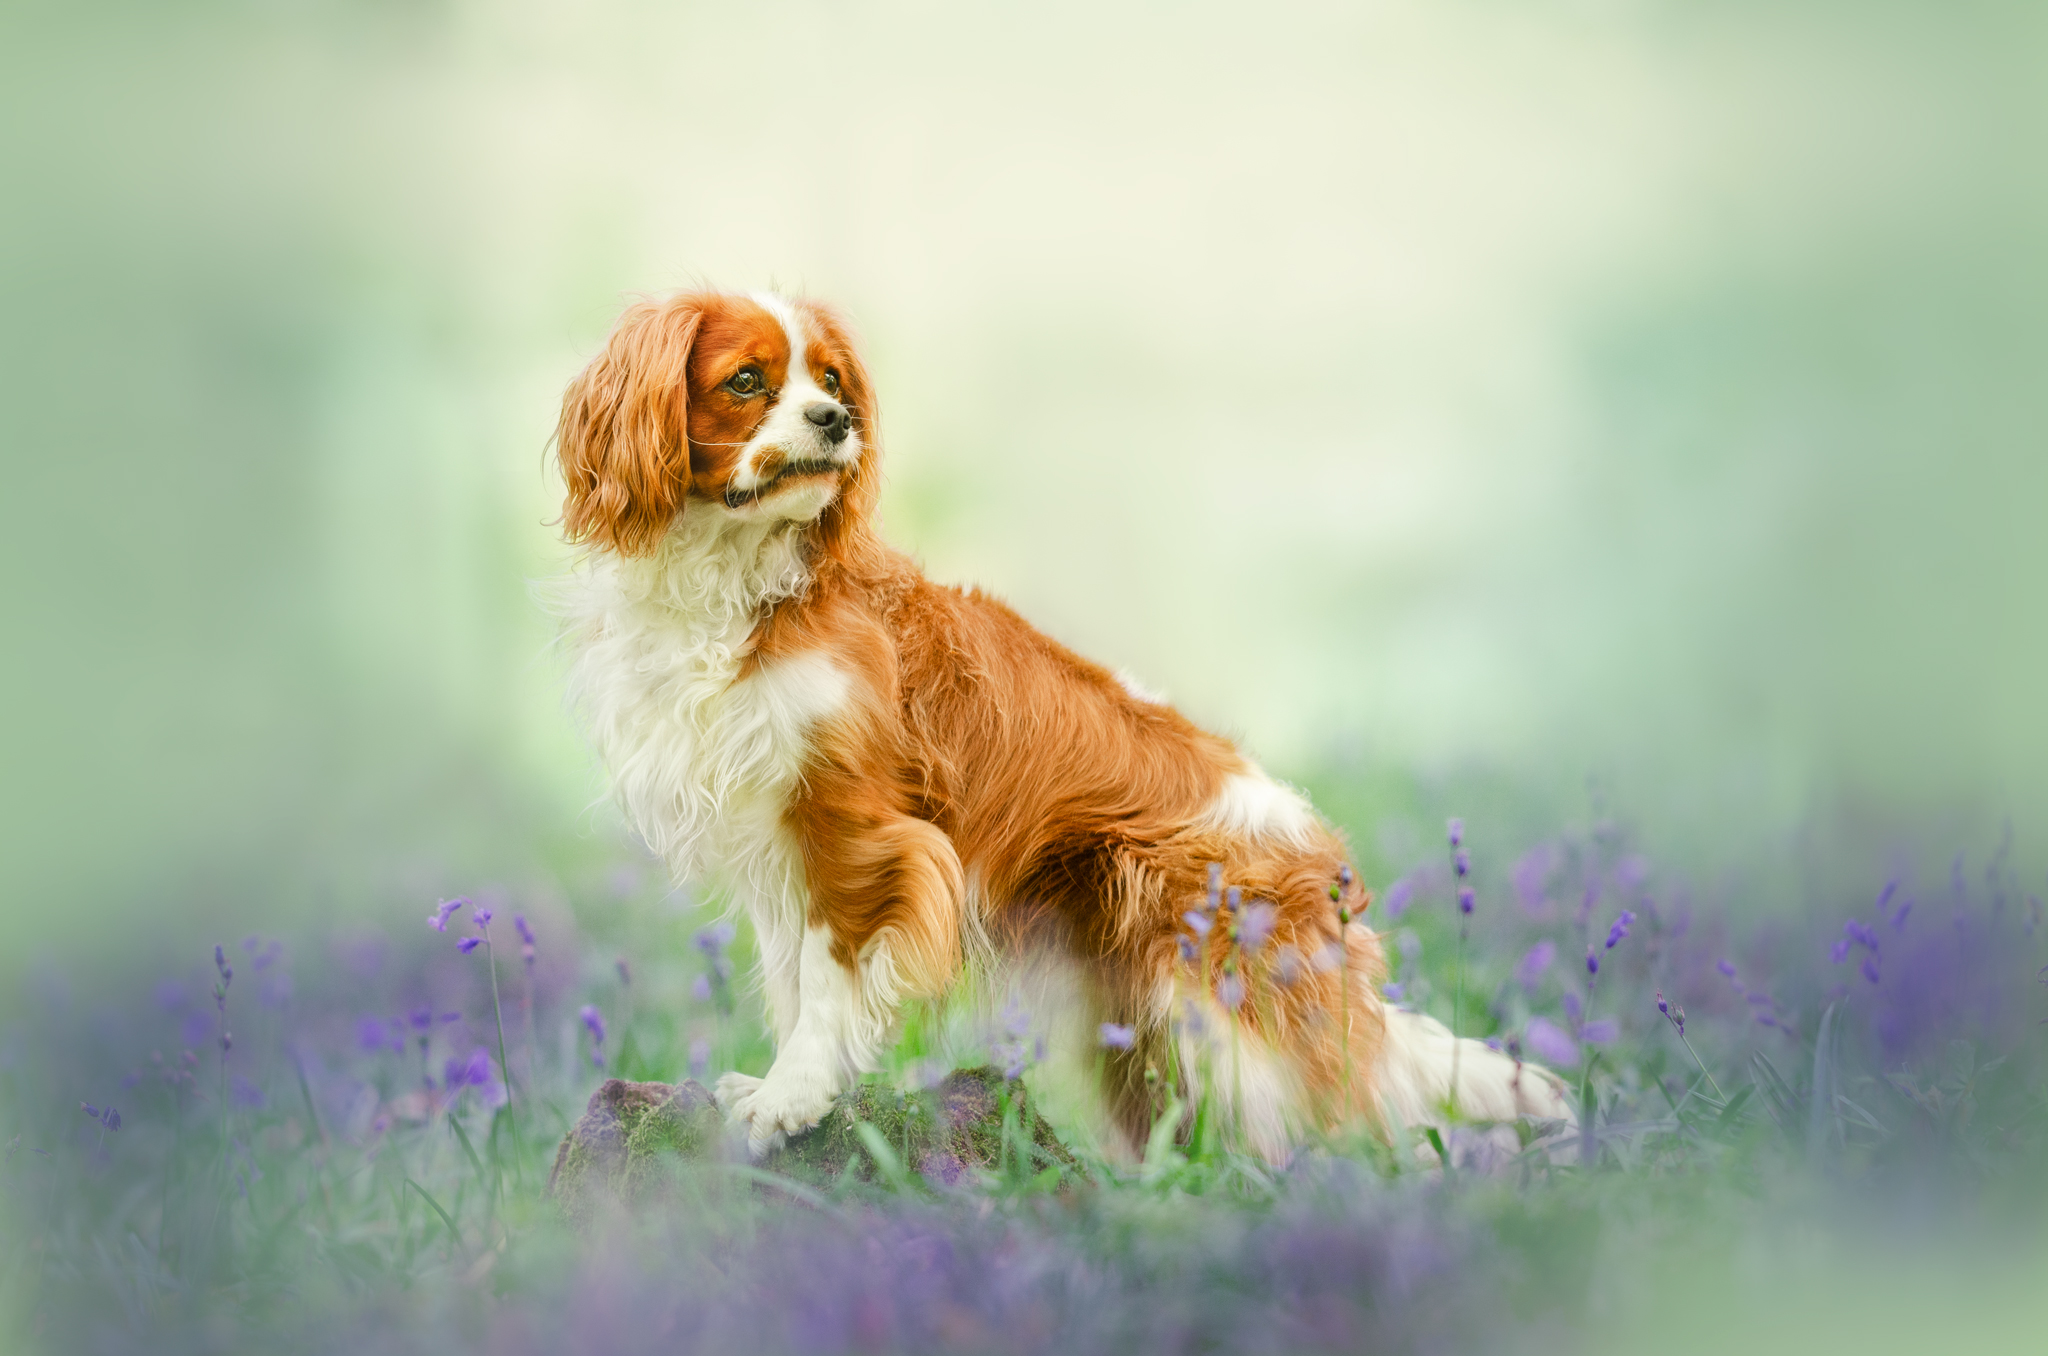 Chien photographe canin portrait cani look cavalier king charles